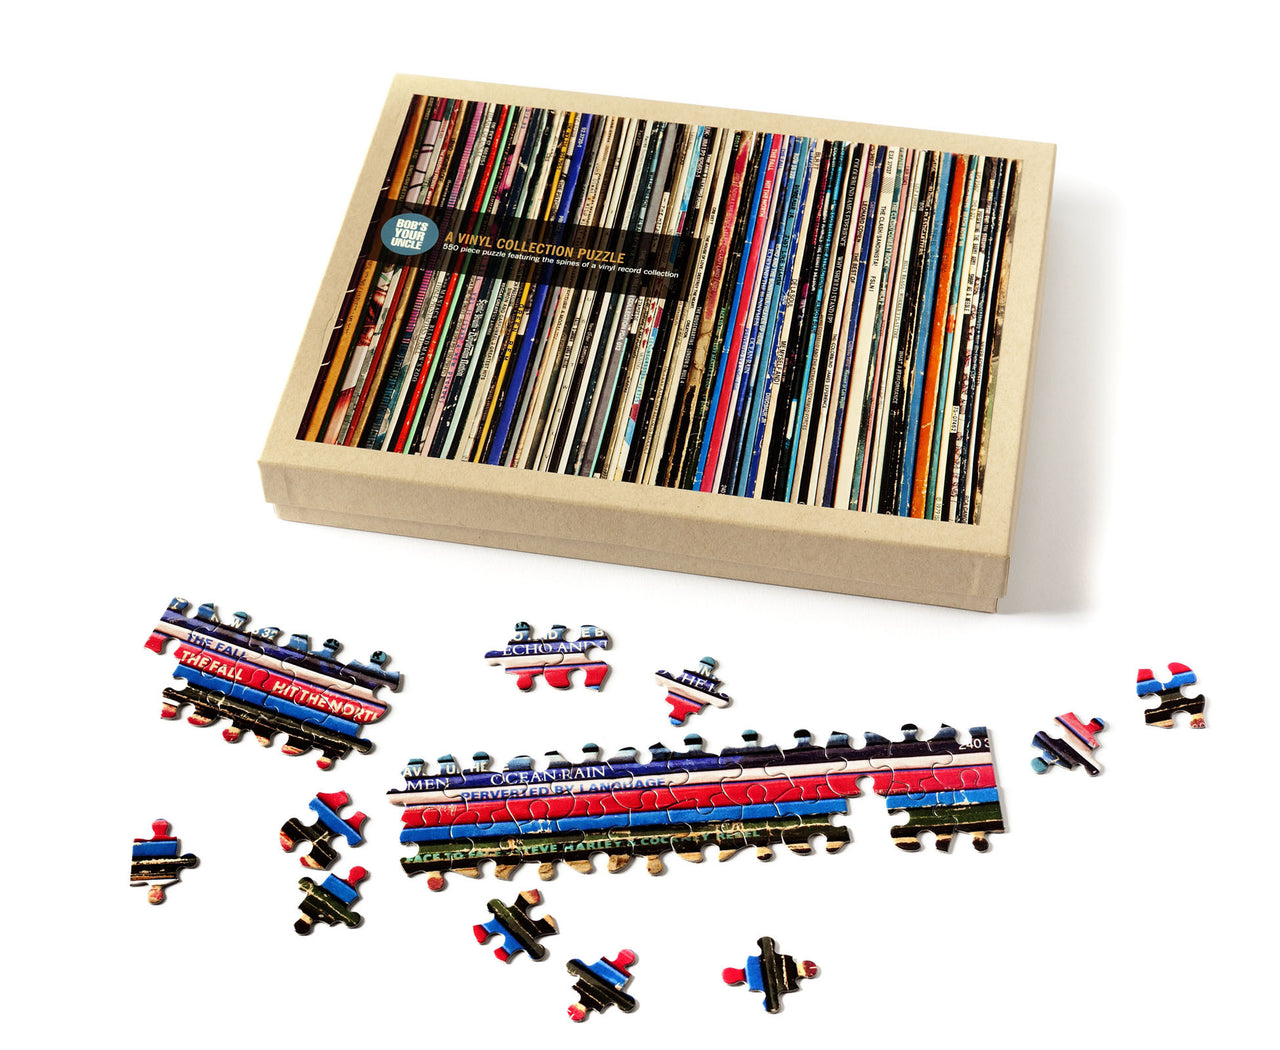 Vinyl Collection Puzzle